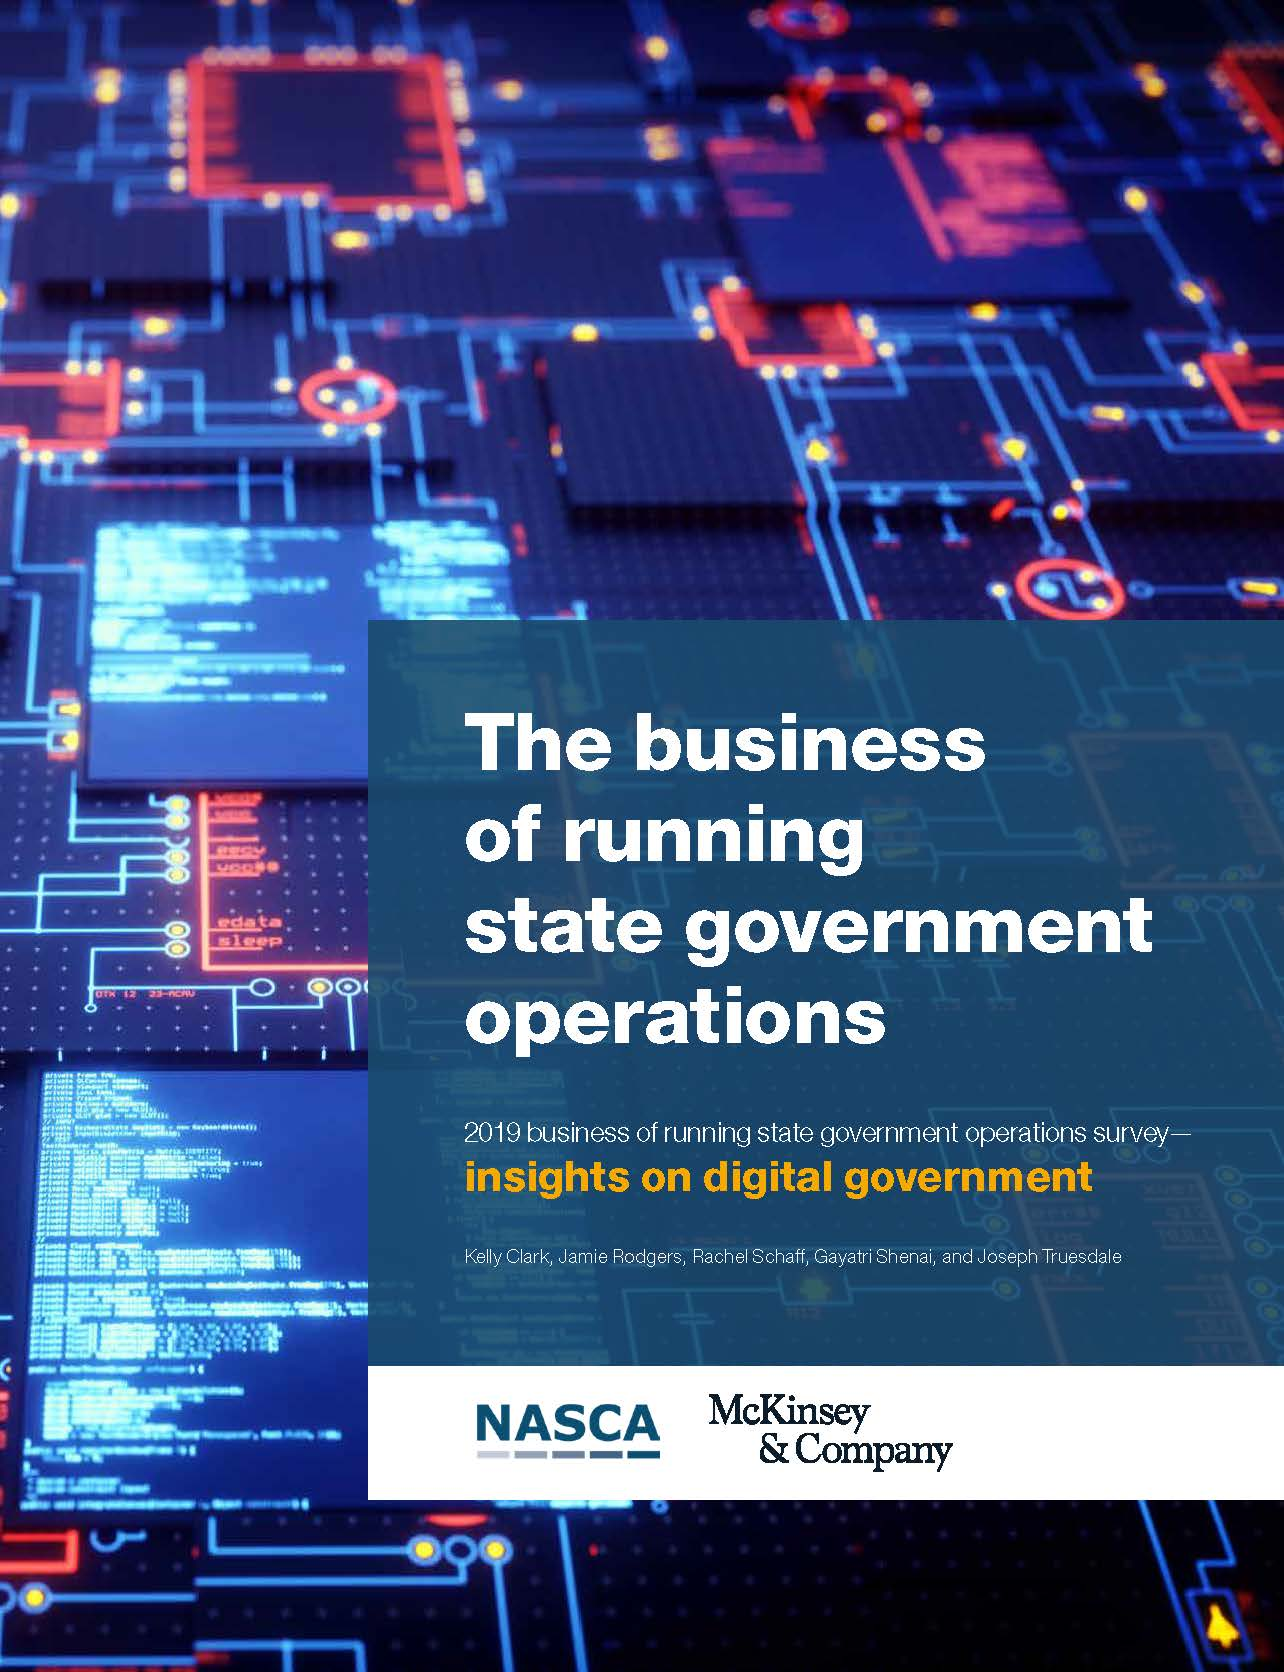 State Chief Administrator's Survey - Insights on Digital Government